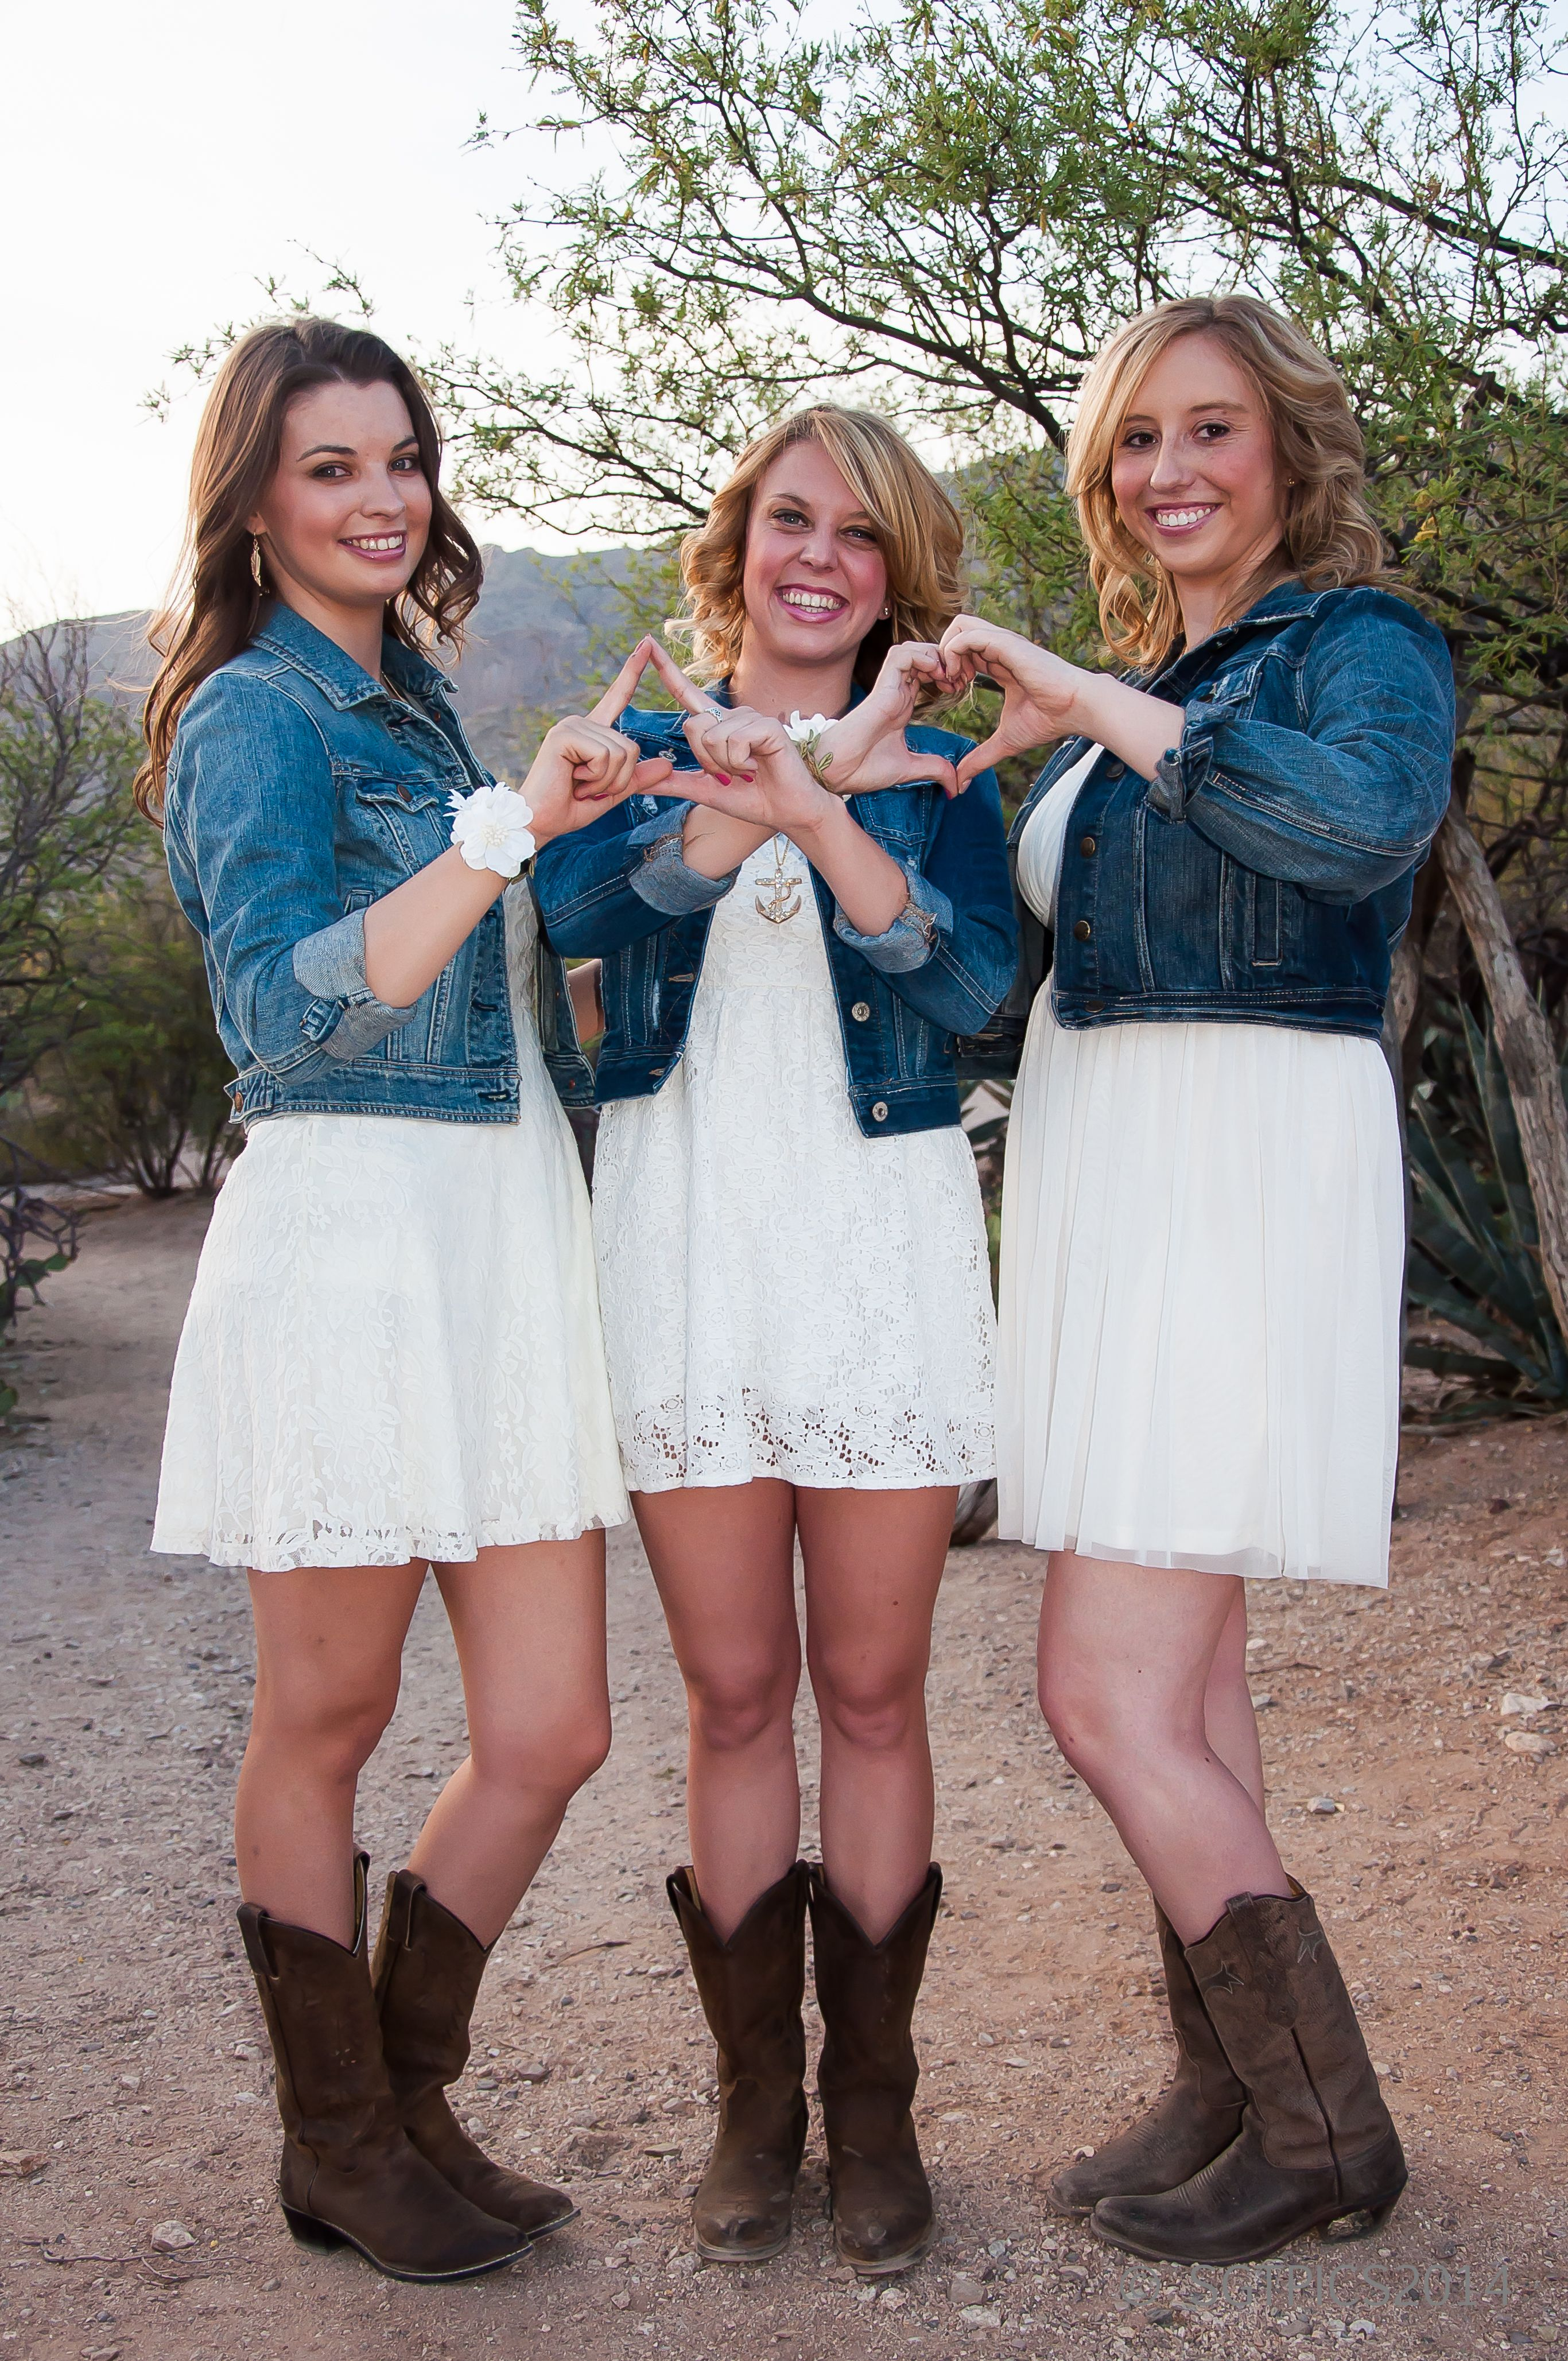 u of a tri~delta sorority girls throwin what they know. desert of